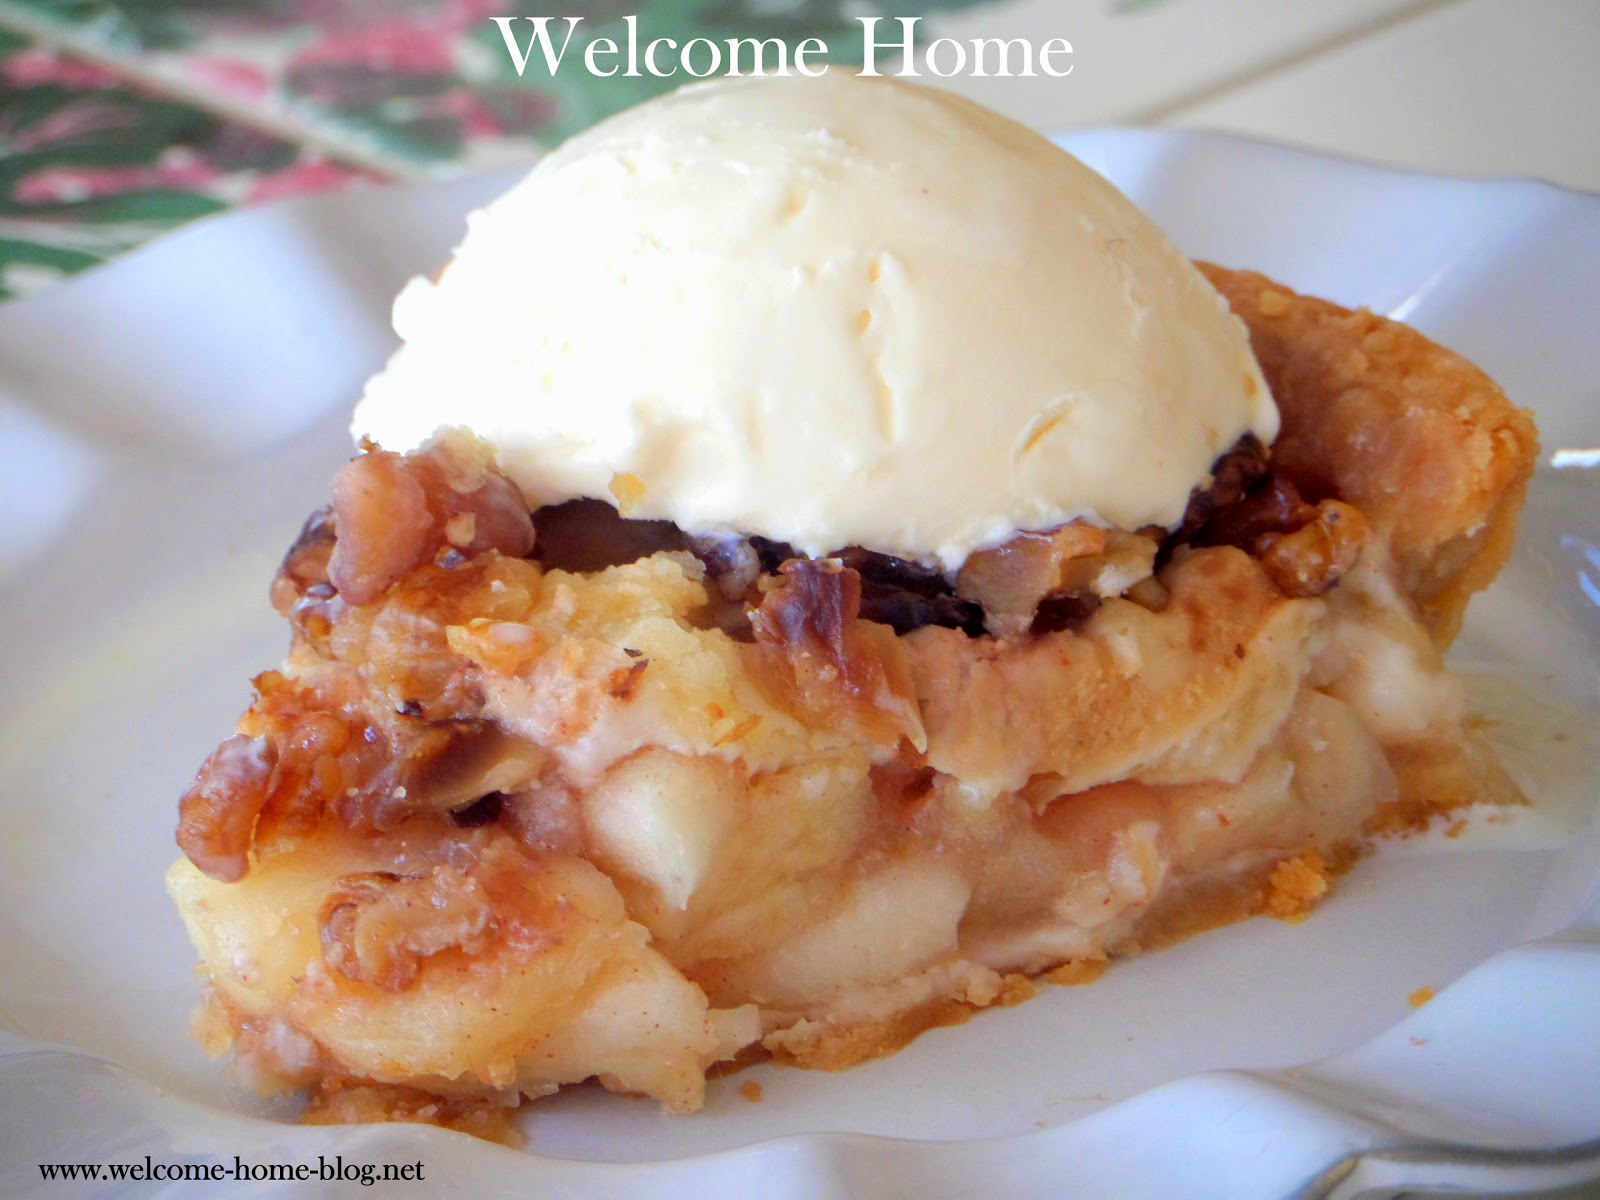 Welcome Home Blog: Caramel Apple Pecan Pie